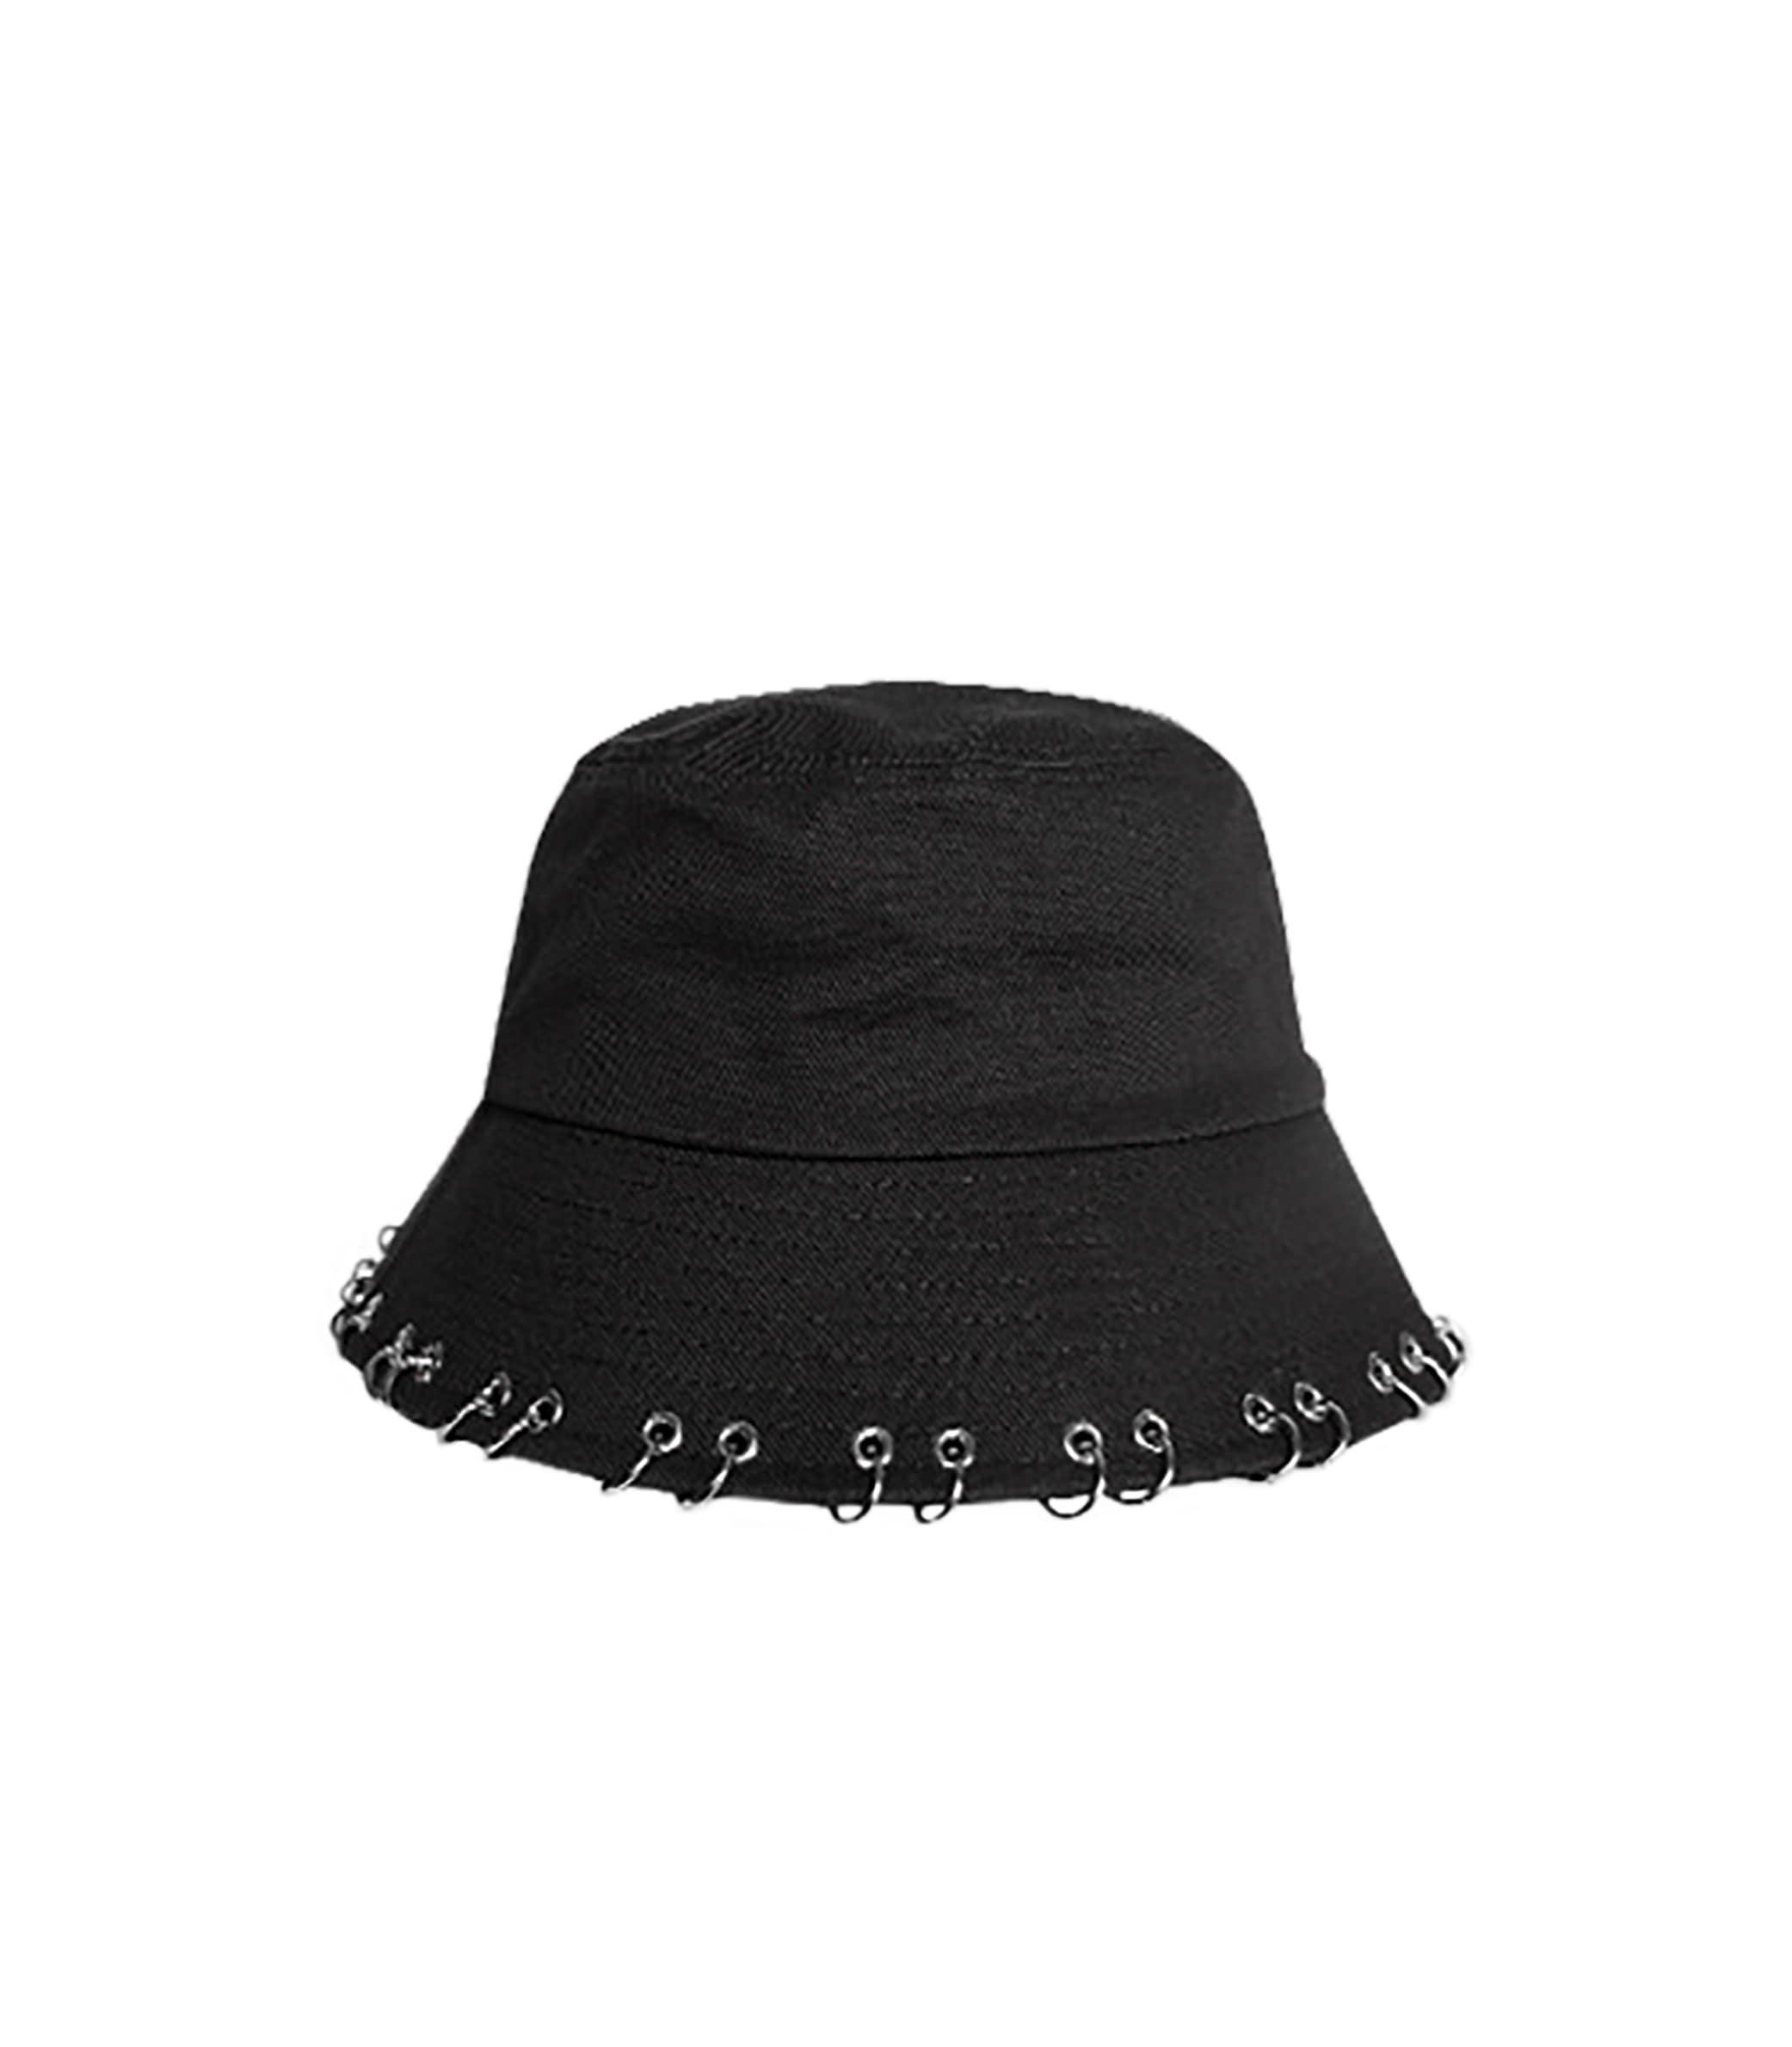 BLACKLINE - RING PIERCING BUCKET HAT (BLACK)